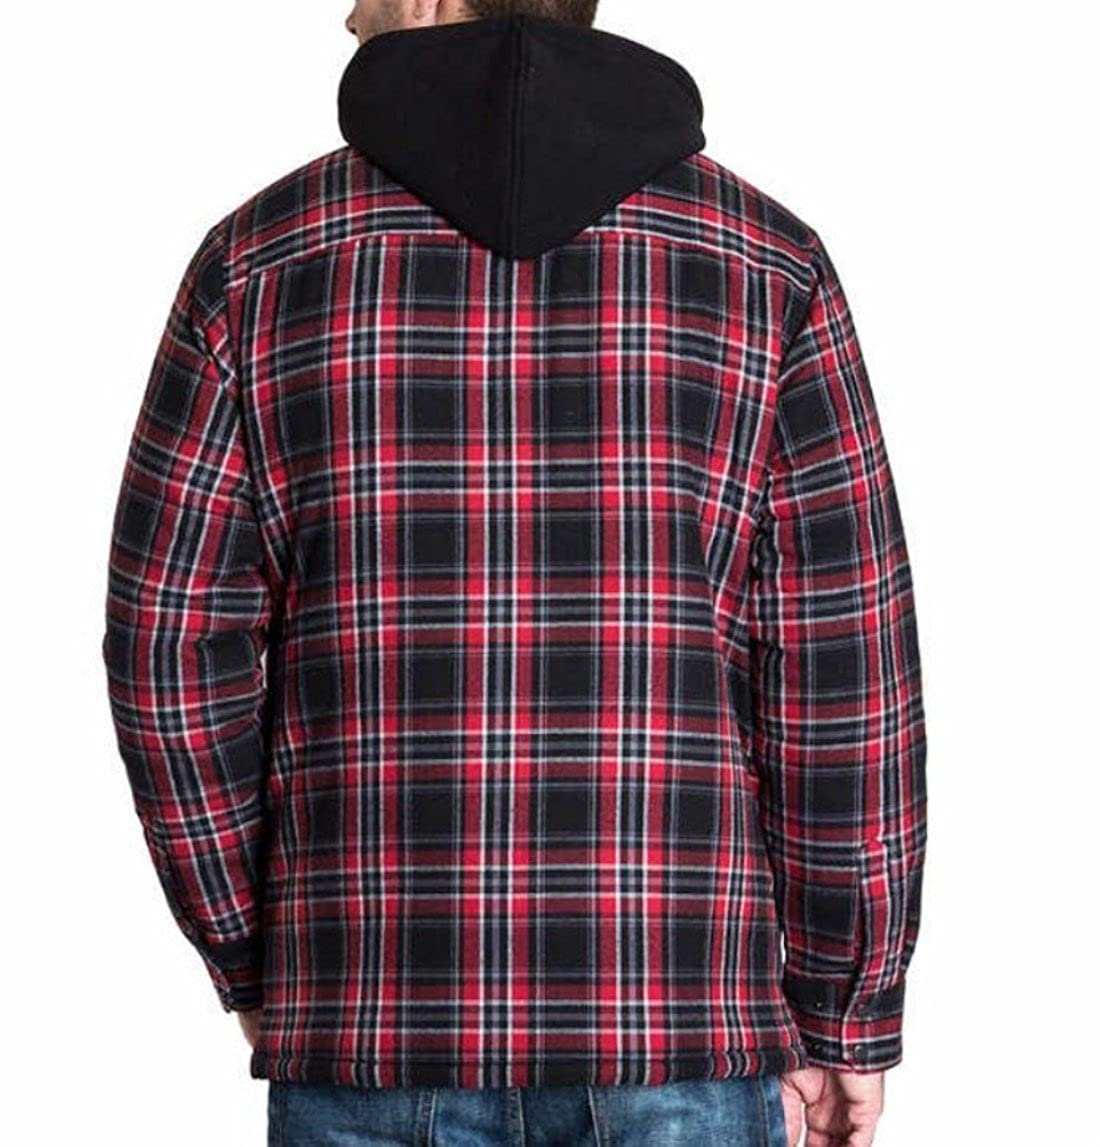 BC Clothing Mens Plaid Hooded Shirt Jacket with Quilted Lining